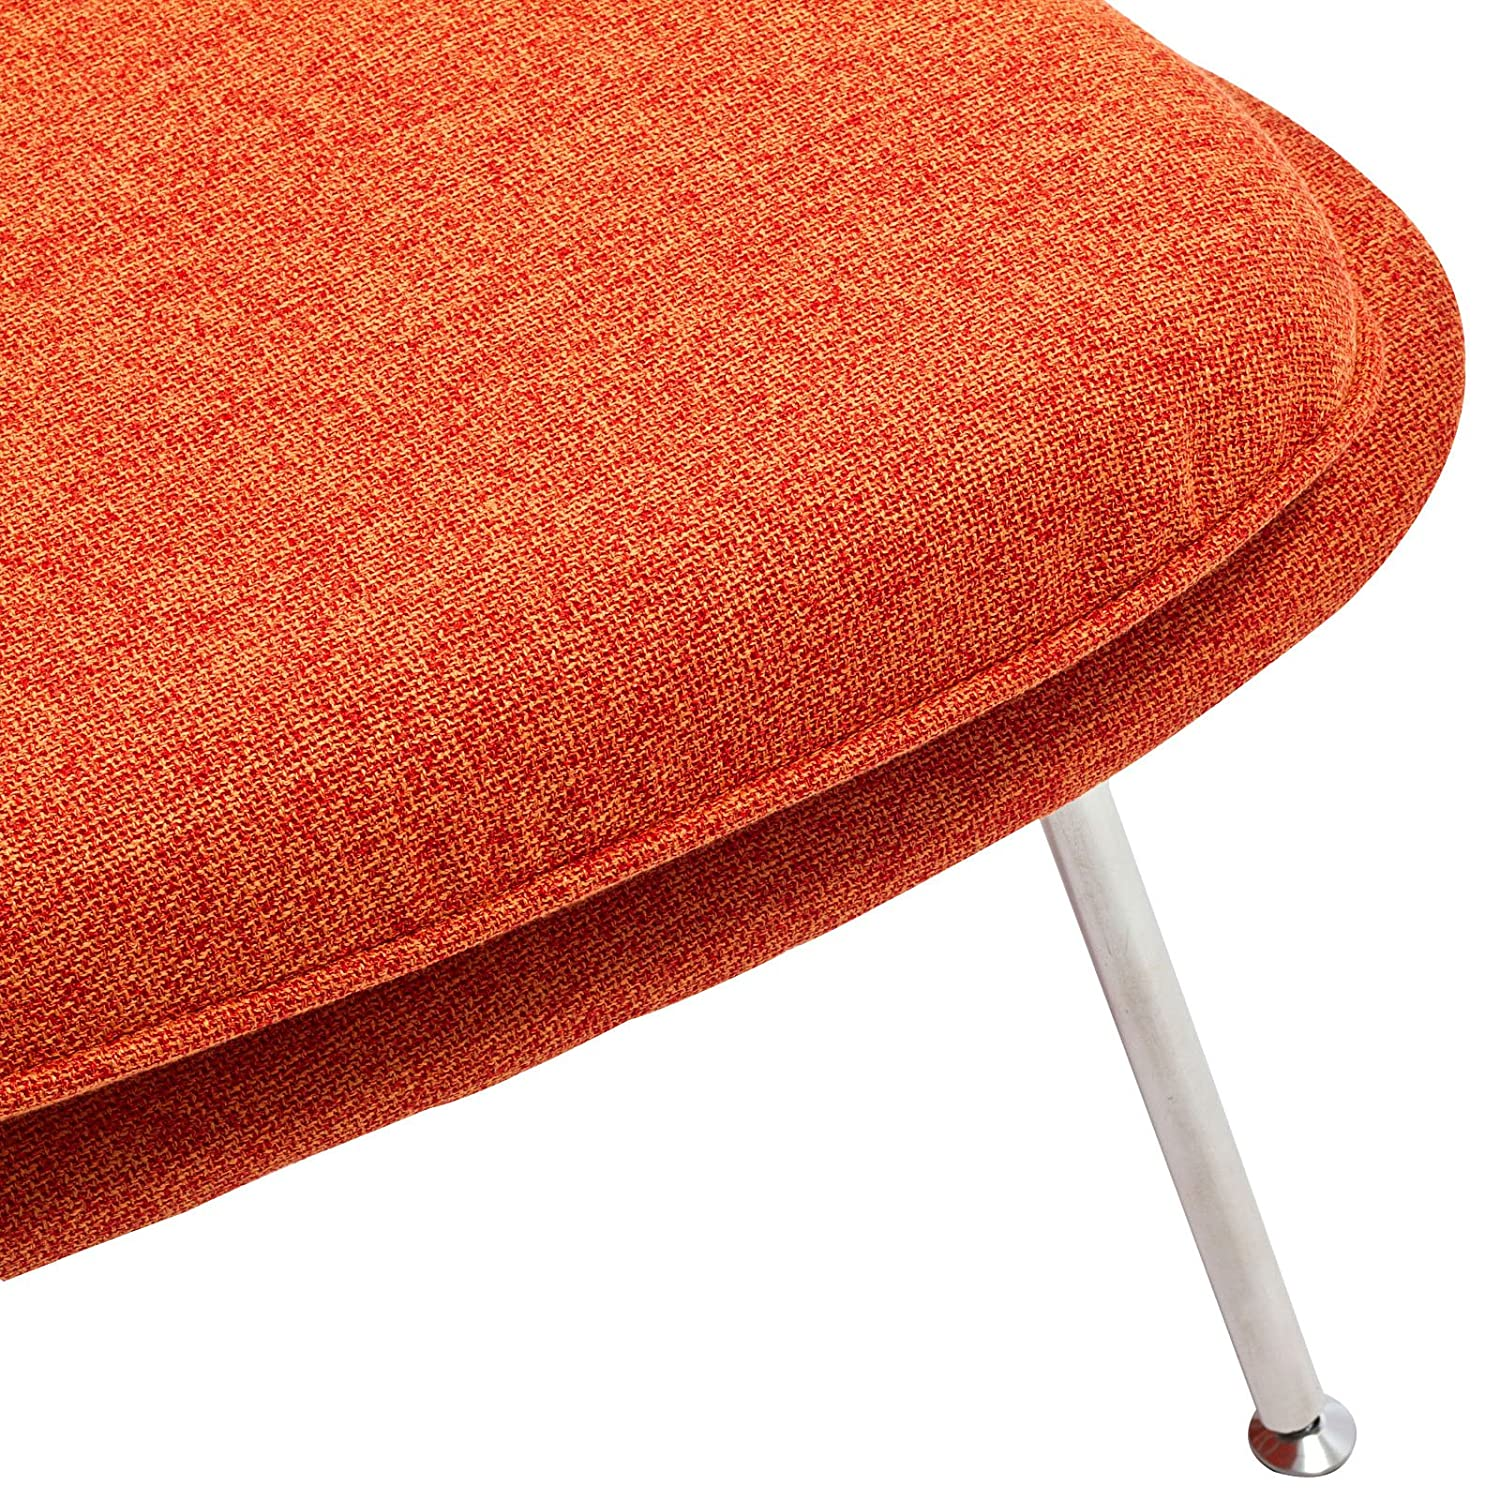 amazoncom modway eero saarinen style womb chair and ottoman set  - amazoncom modway eero saarinen style womb chair and ottoman set in orangetweed kitchen  dining